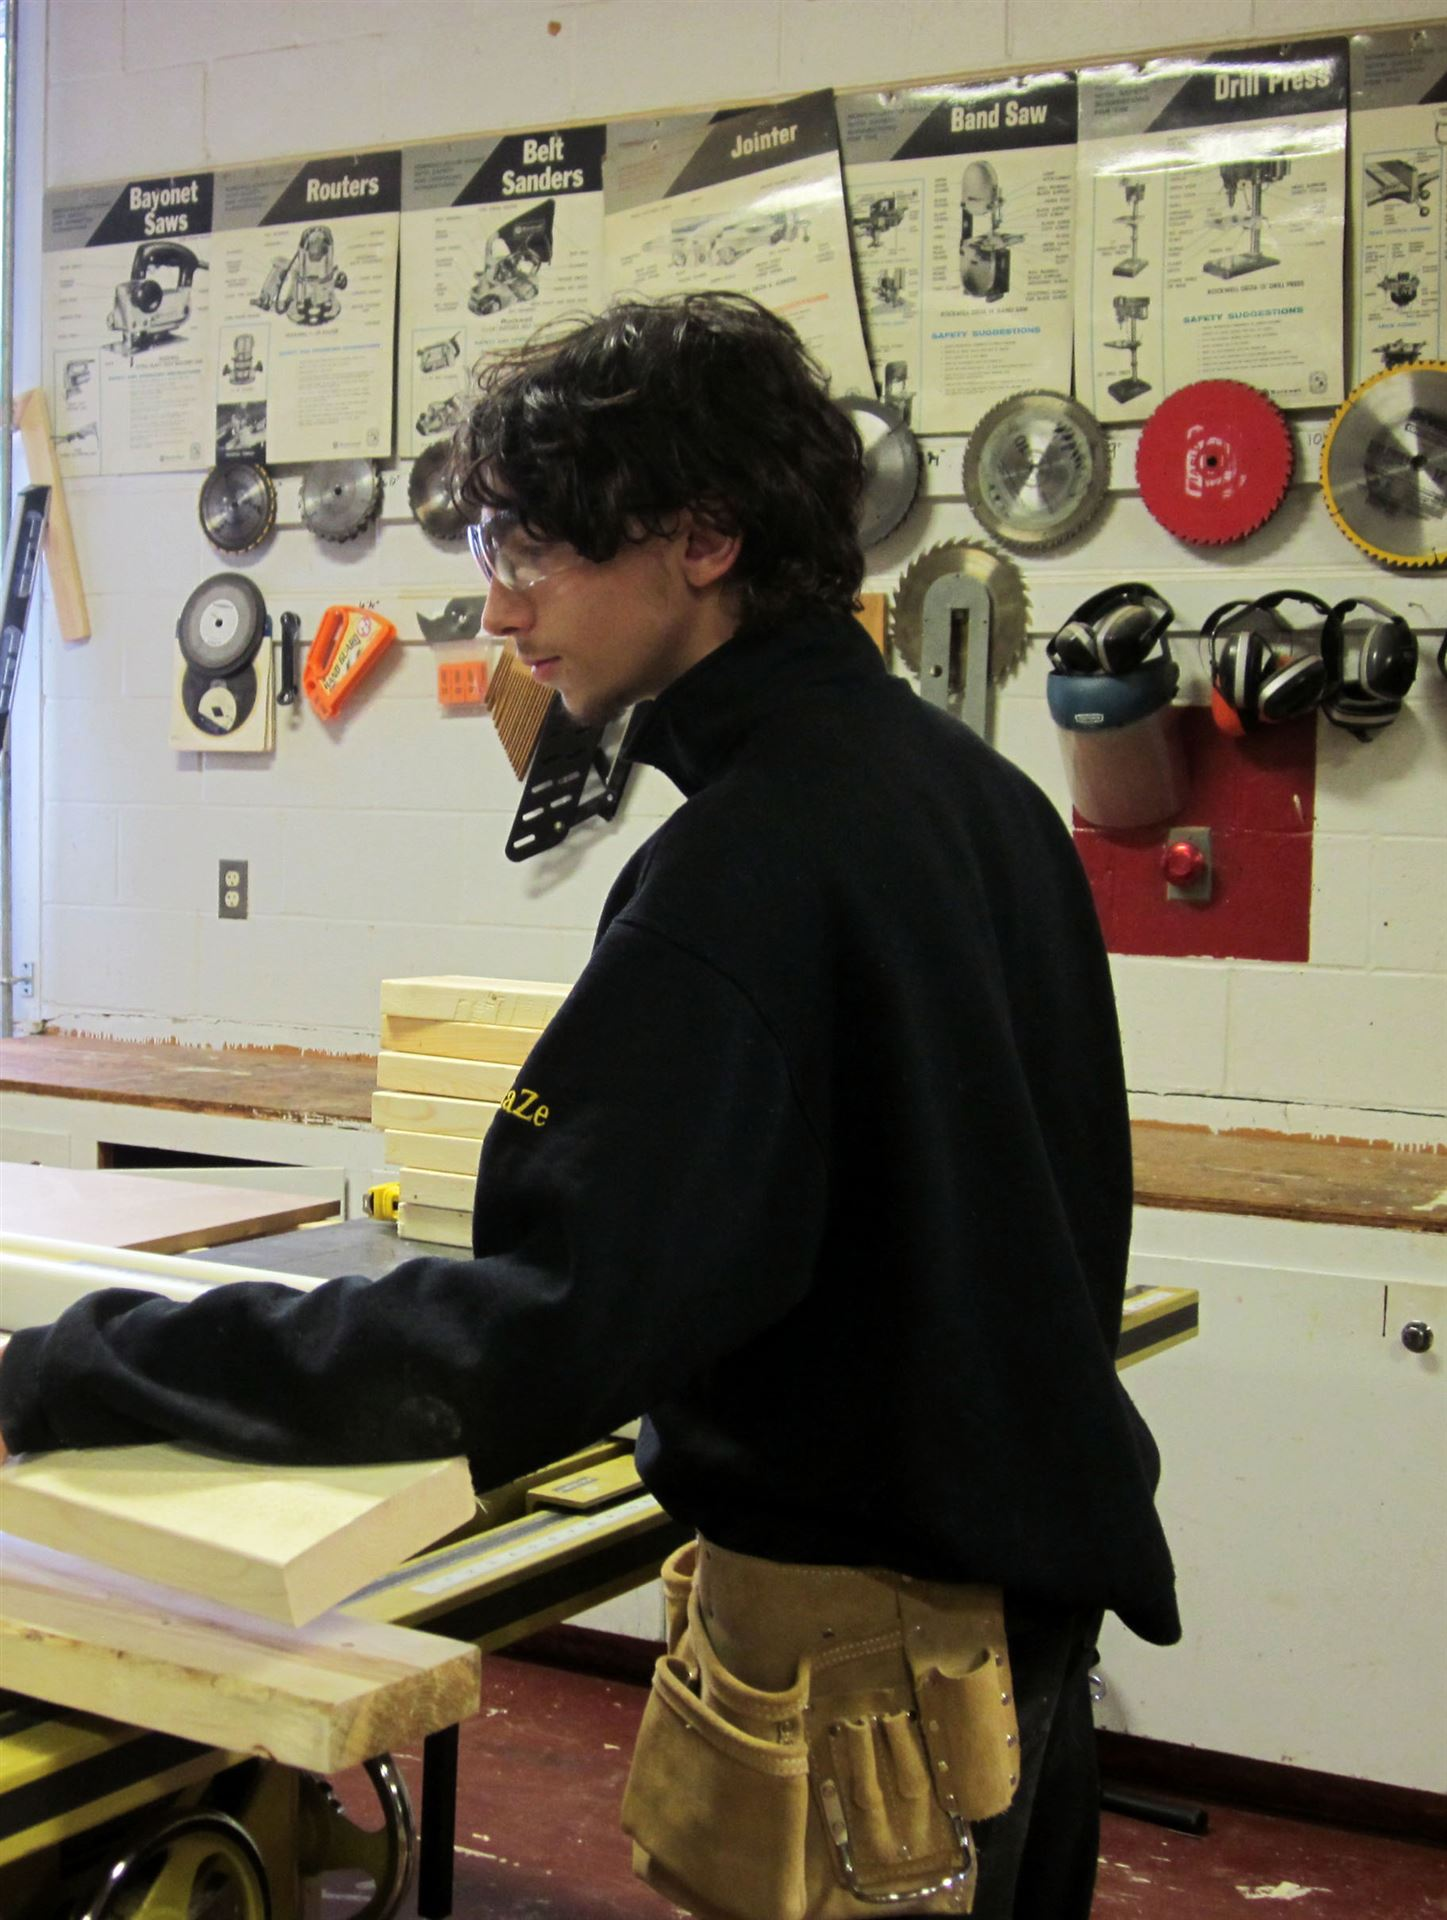 Carpentry student with materials